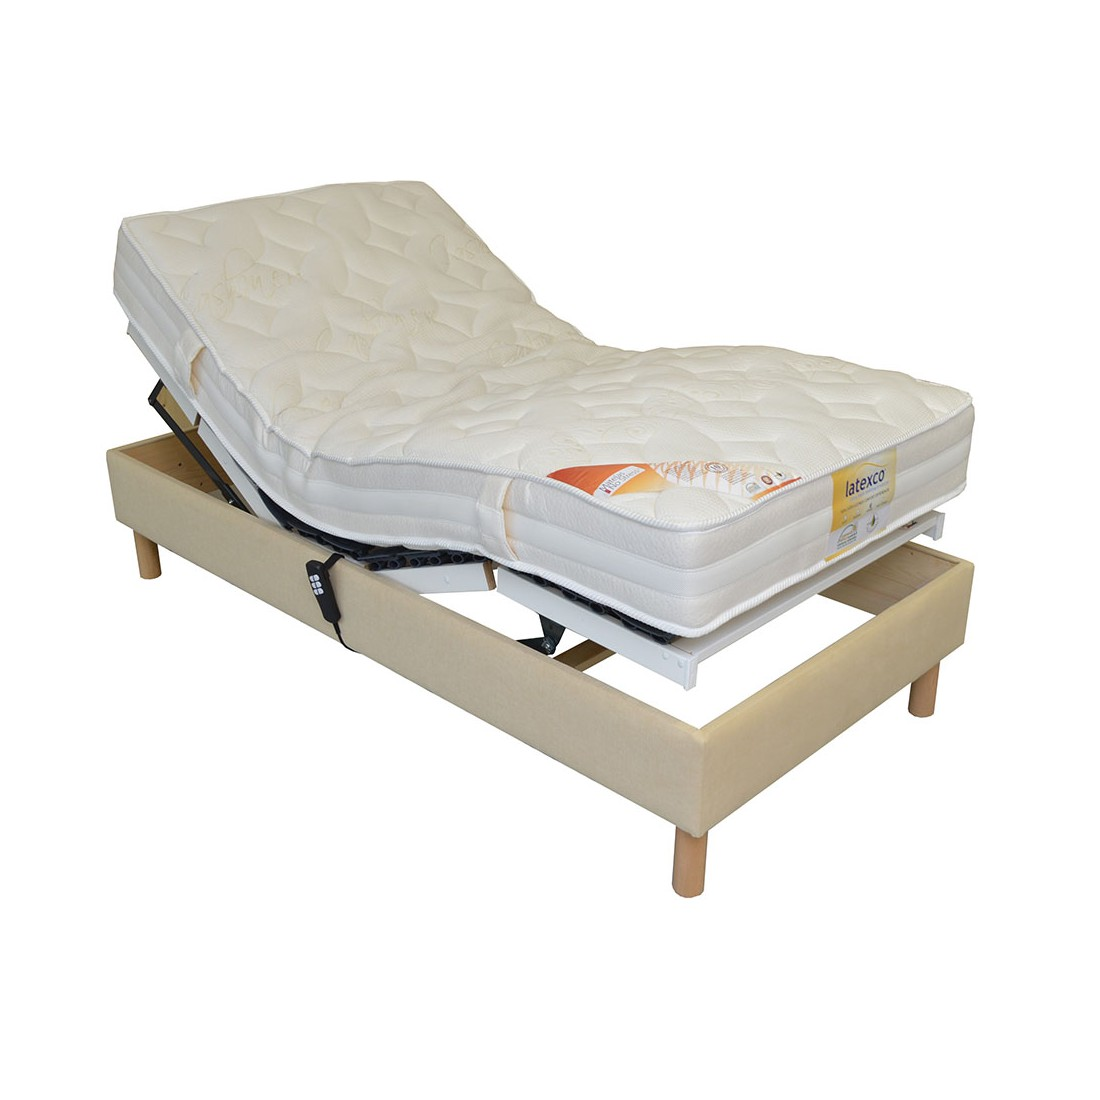 matelas 80x200 pour lit electrique matelas sommier 2 x 80. Black Bedroom Furniture Sets. Home Design Ideas